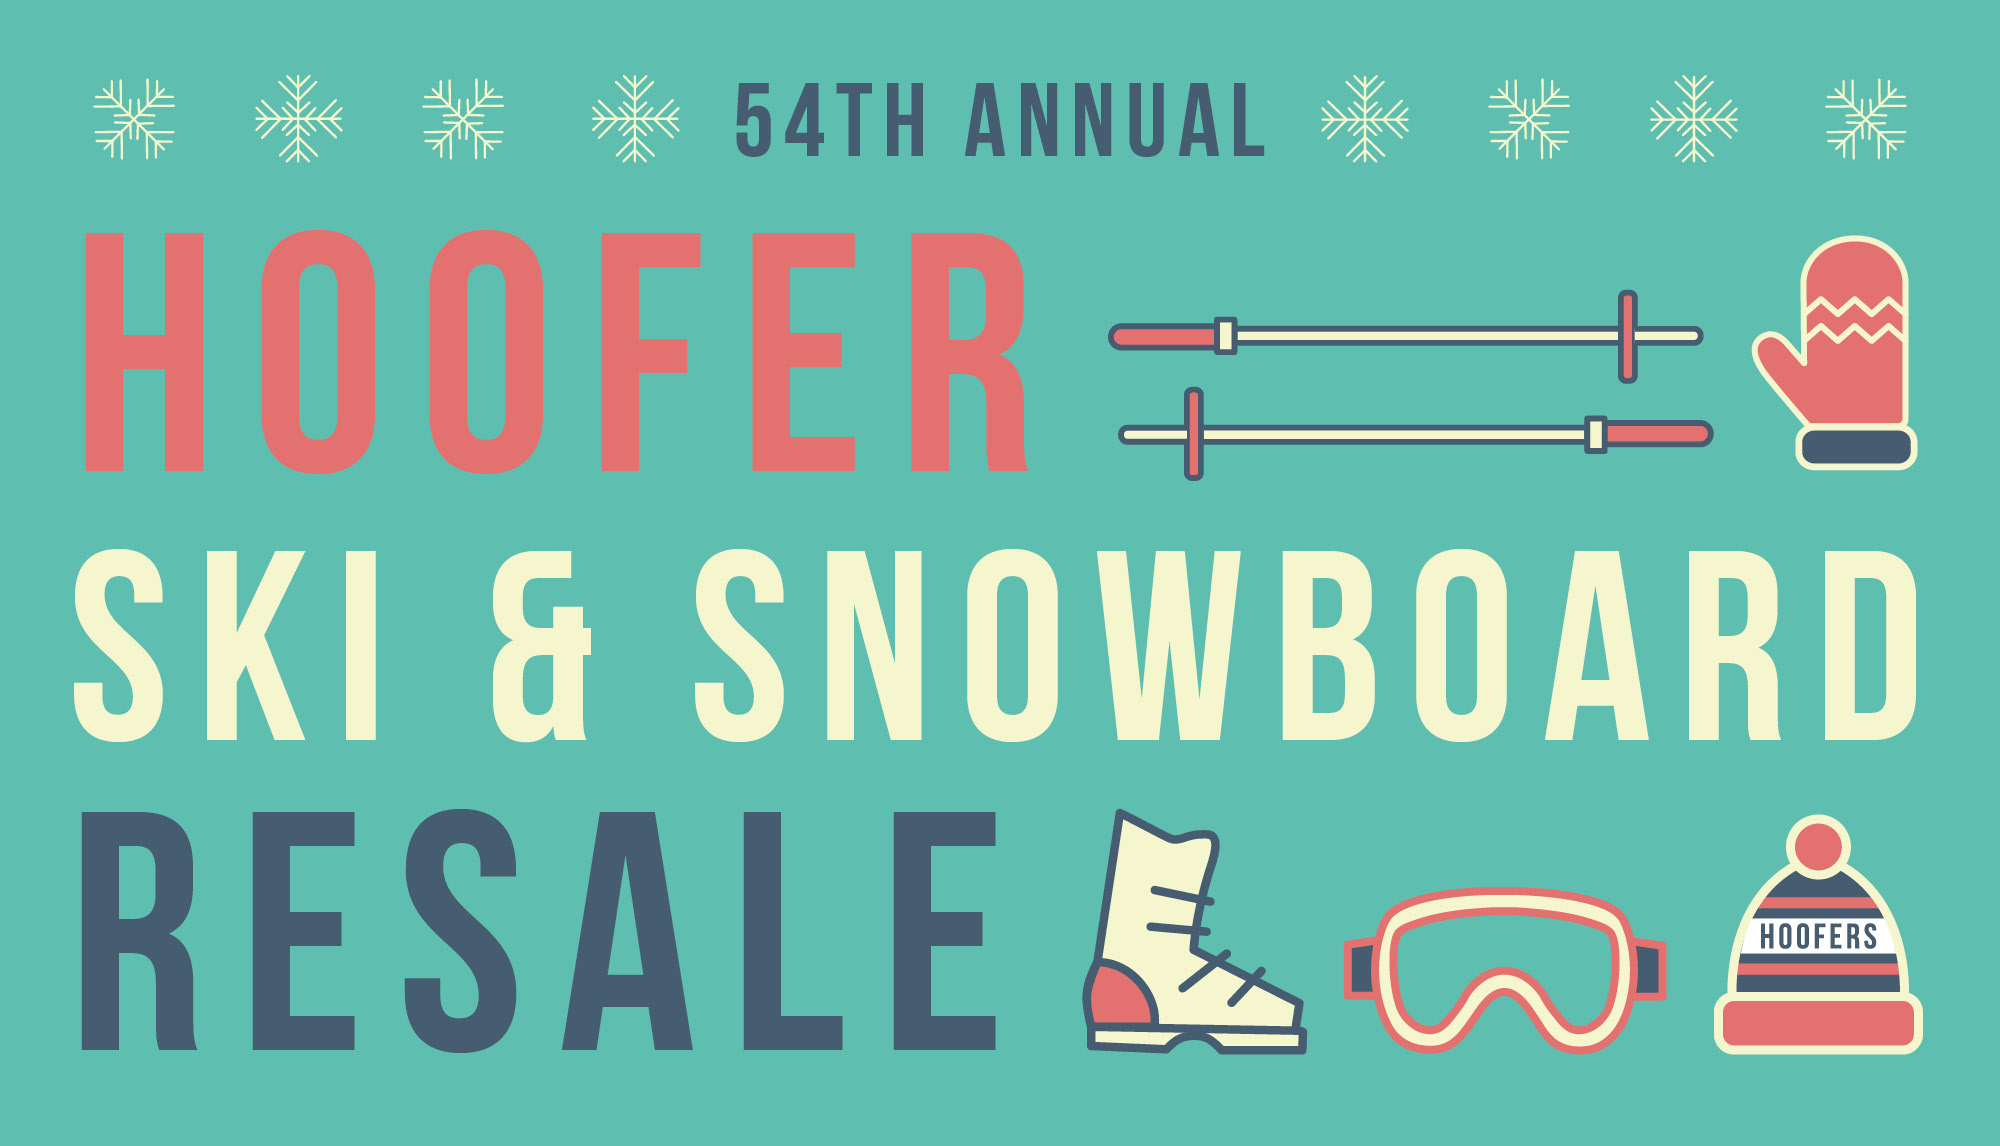 Hoofer Ski & Snowboard Resale Slider Image